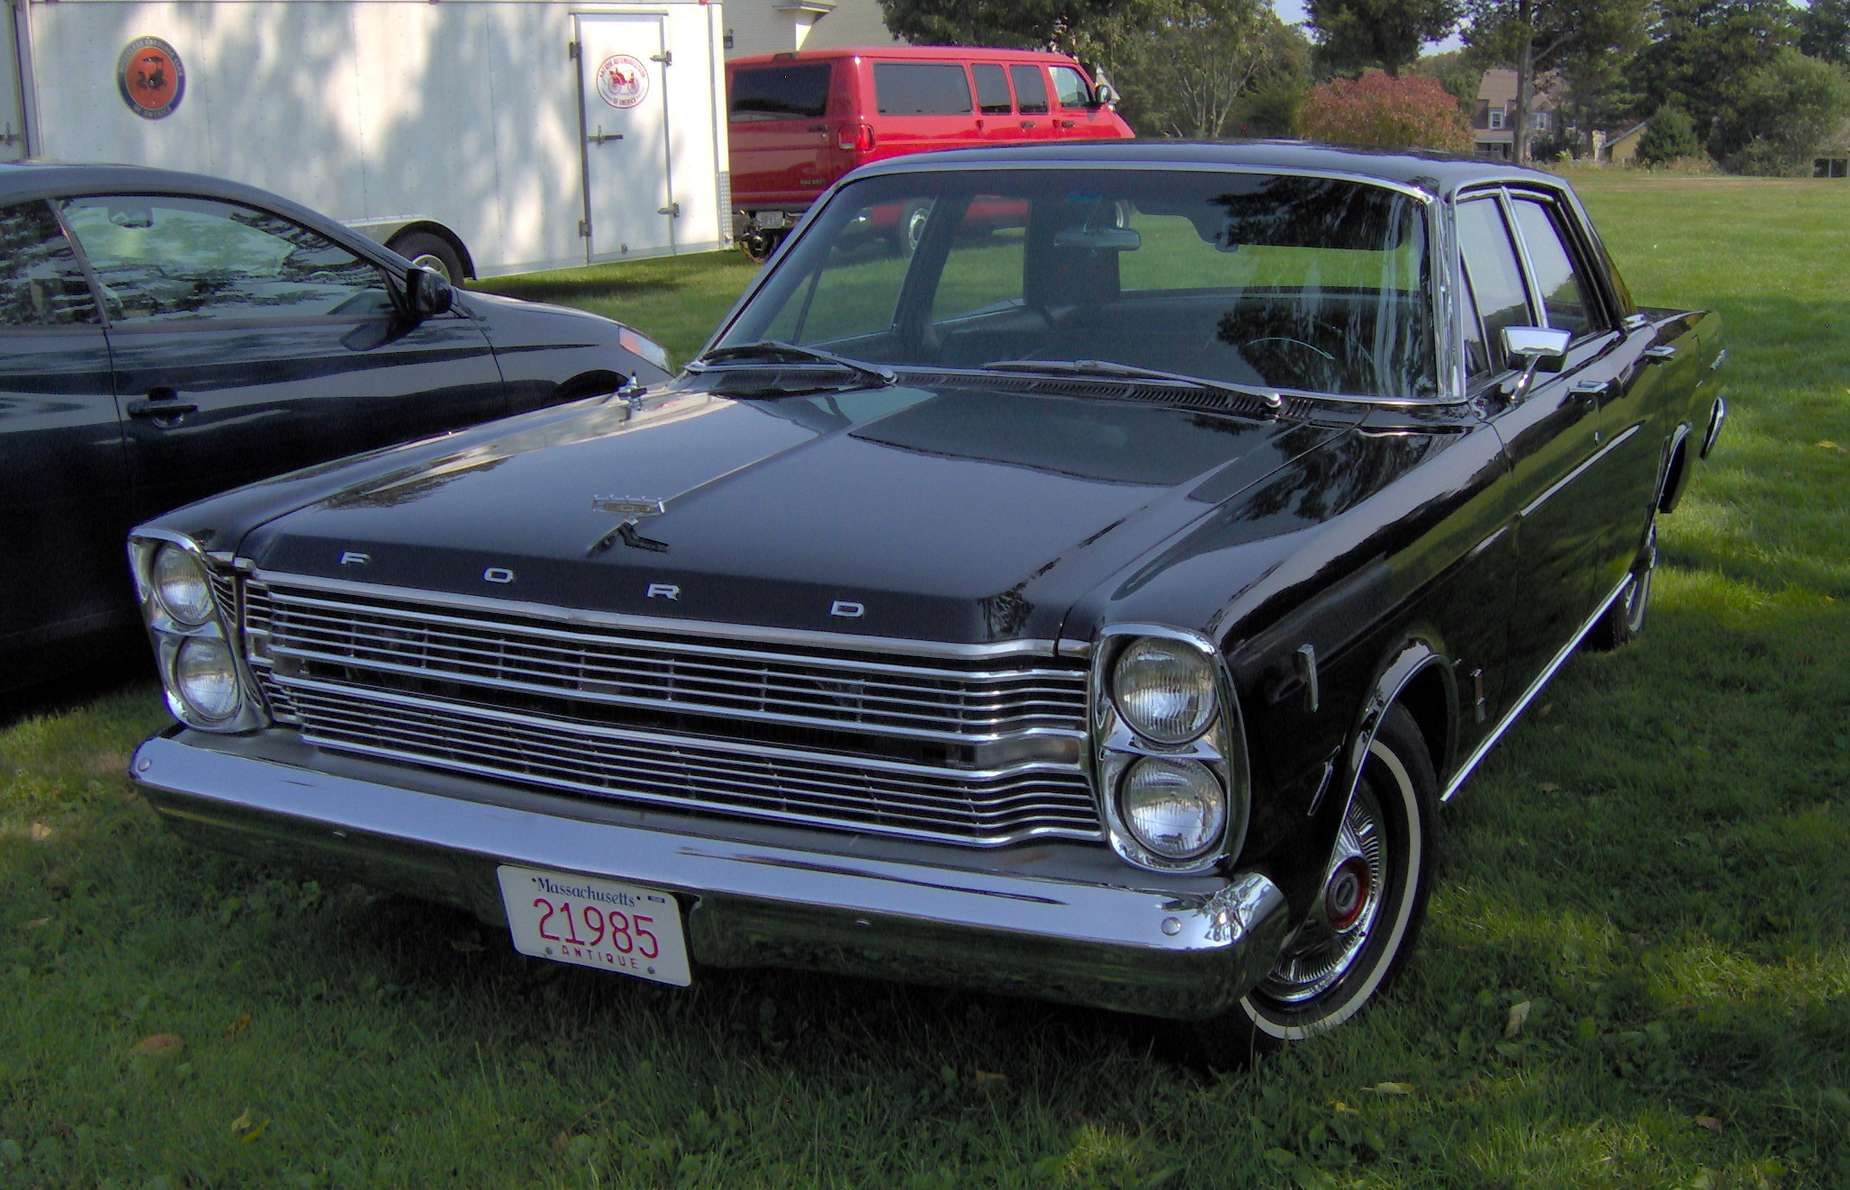 Ford Galaxie 500 #7477490